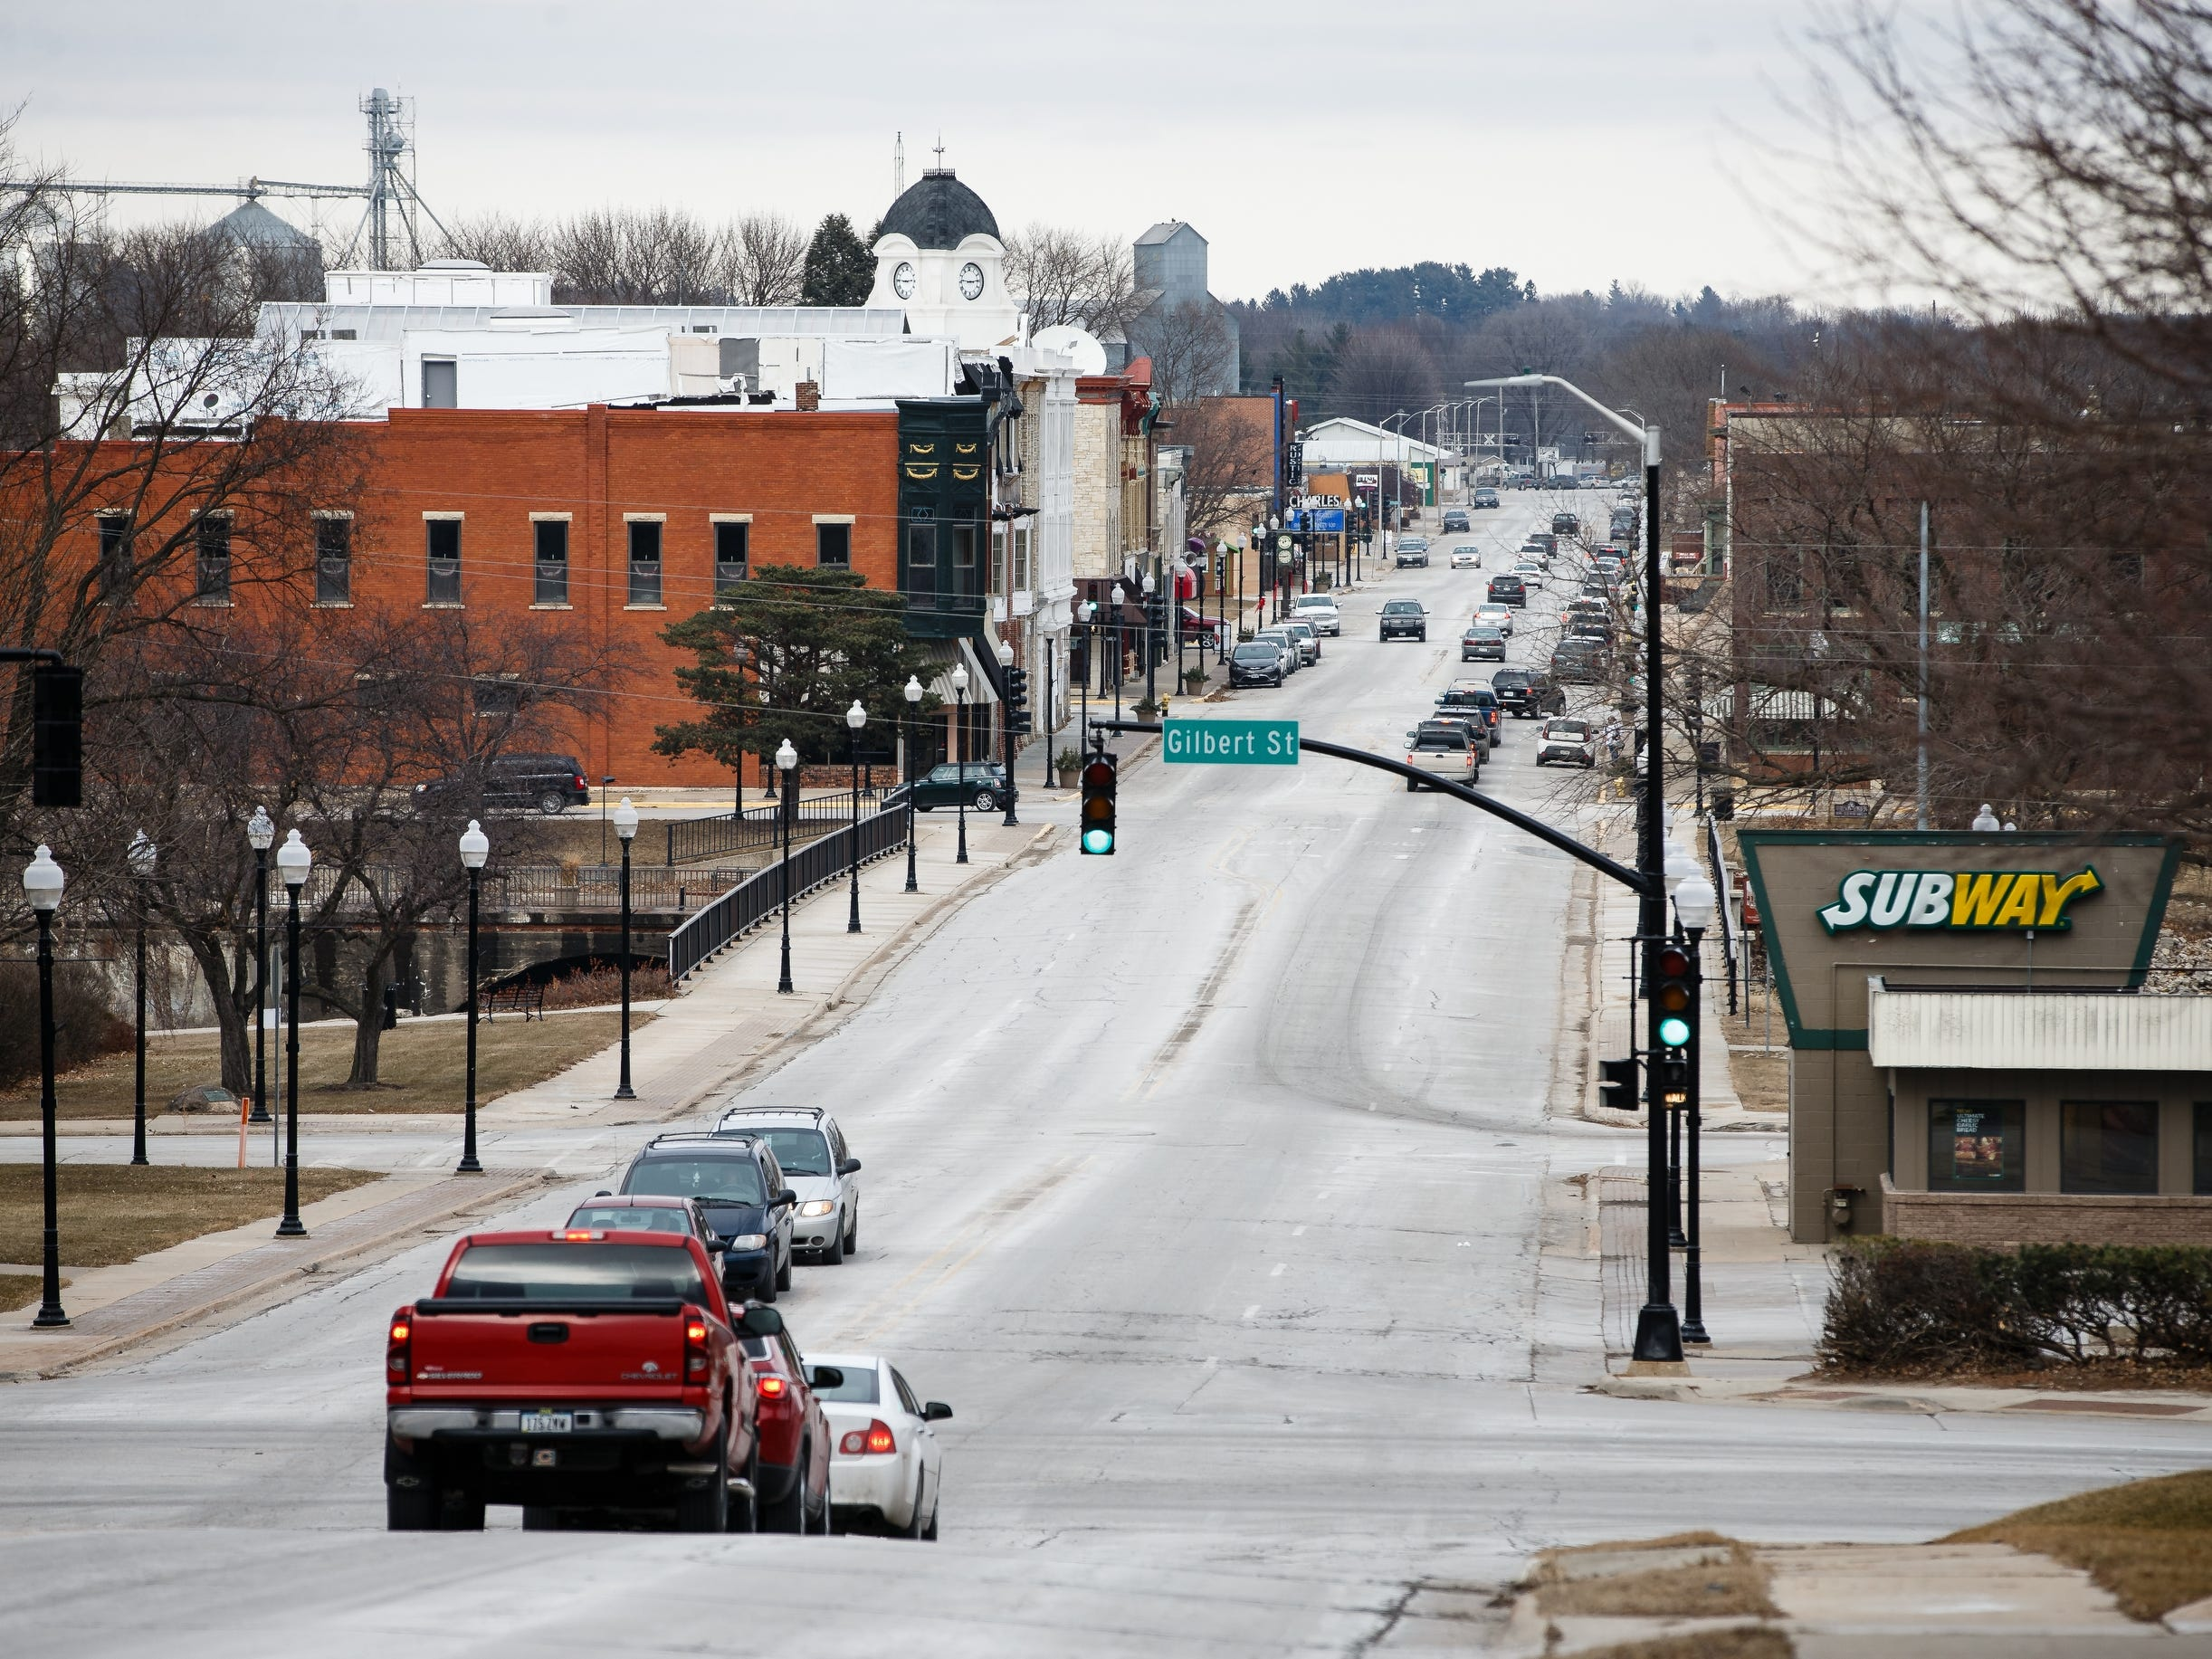 The clock tower of McQuillen Place is seen looking over downtown Charles City on Wednesday, Jan. 16, 2019, in Charles City. Charles Thomson wanted to bring together housing and retail on the city's busiest intersection, but financing troubles and spats with the state have left the project in limbo for the past year.